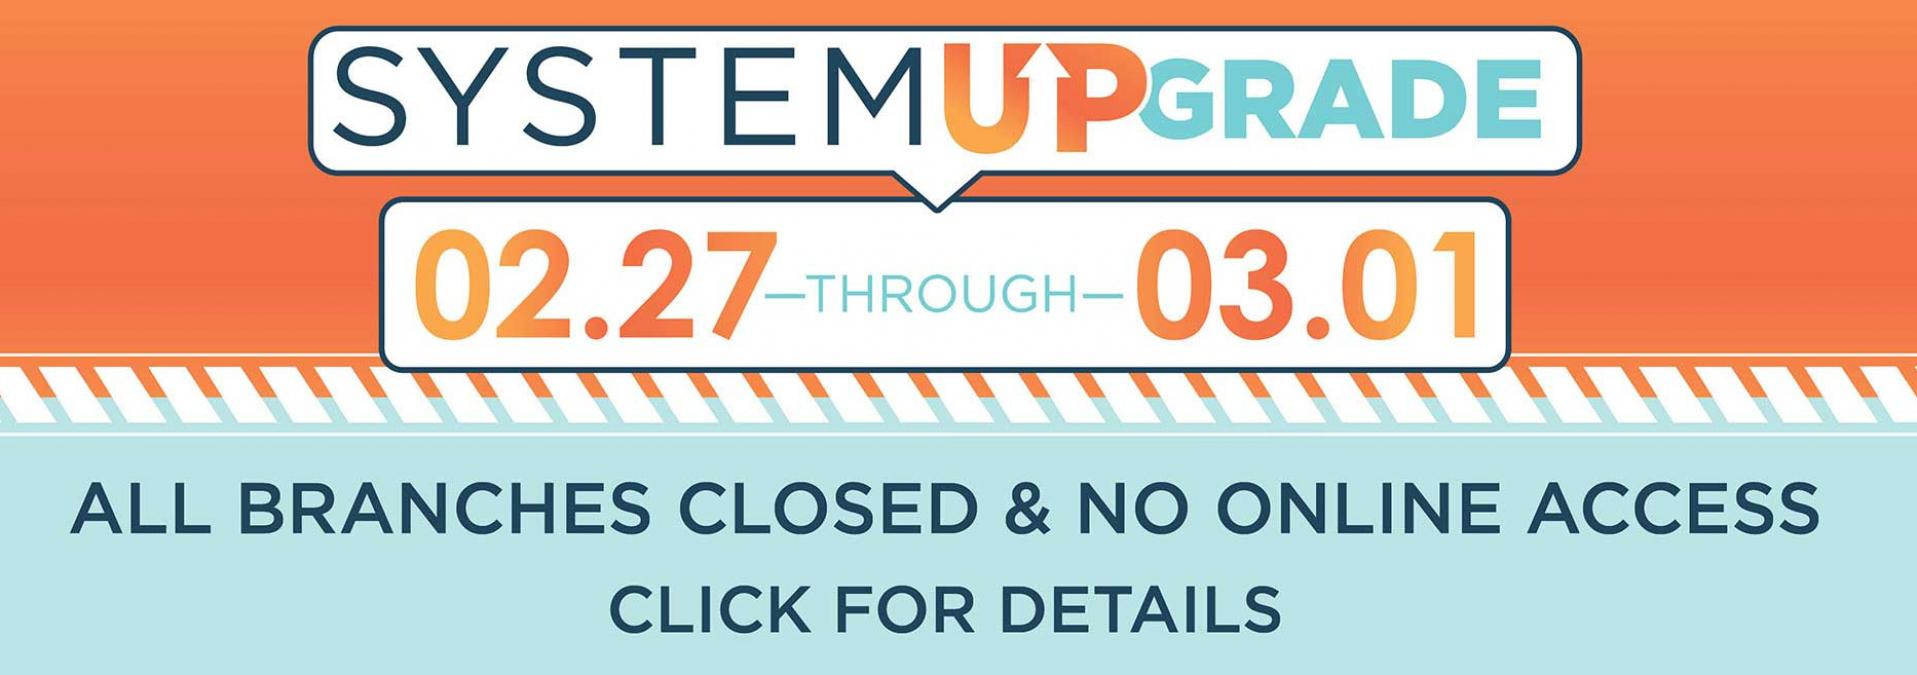 System Upgrade: All Branches Closed  No Online Access.